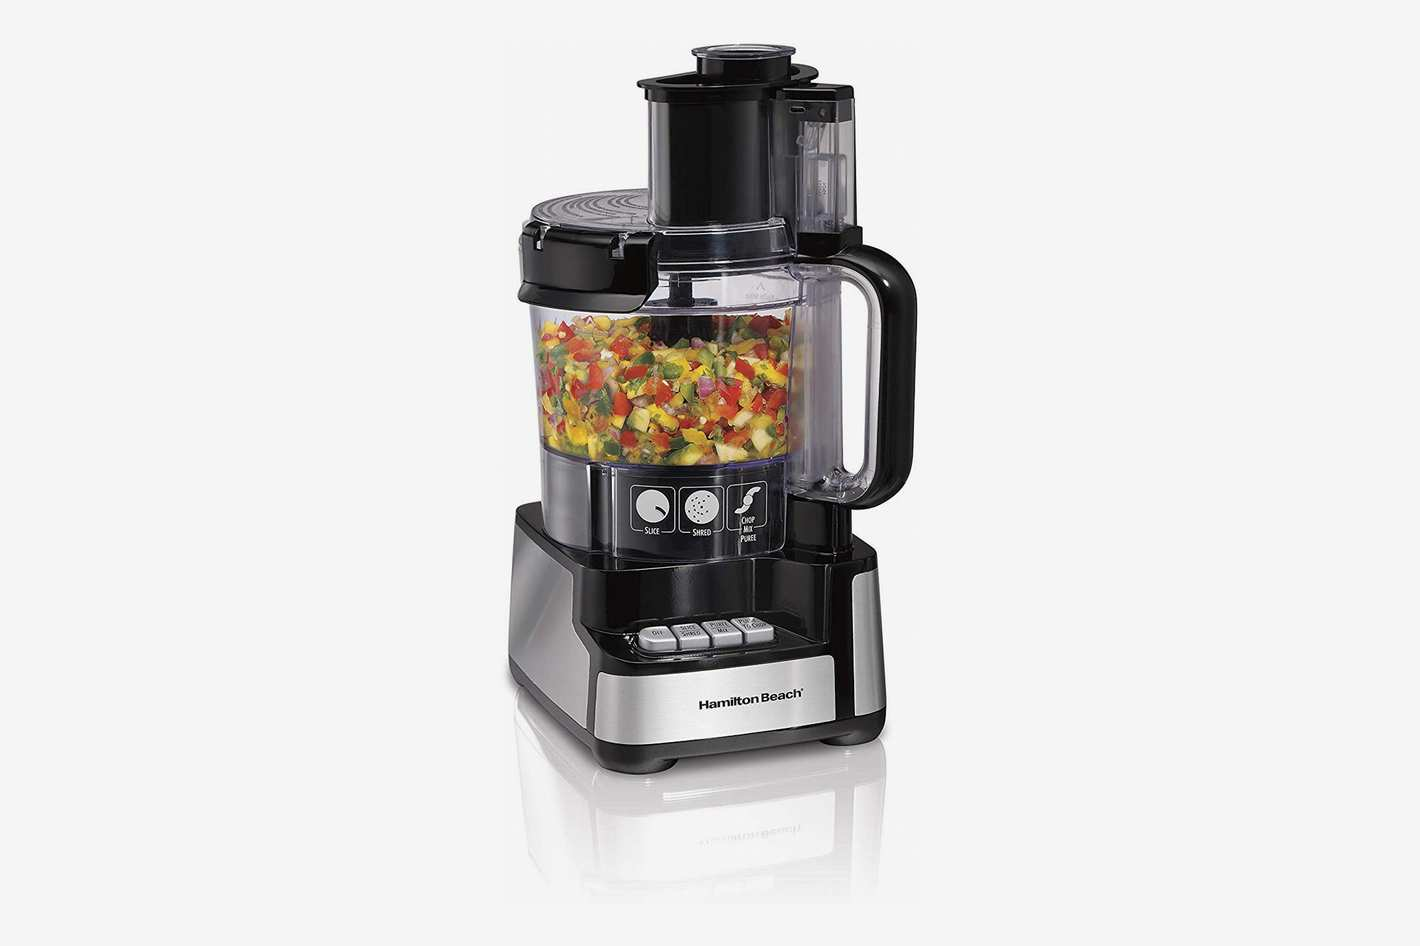 Hamilton Beach 70725A 12-Cup Stack & Snap Food Processor and Vegetable Chopper